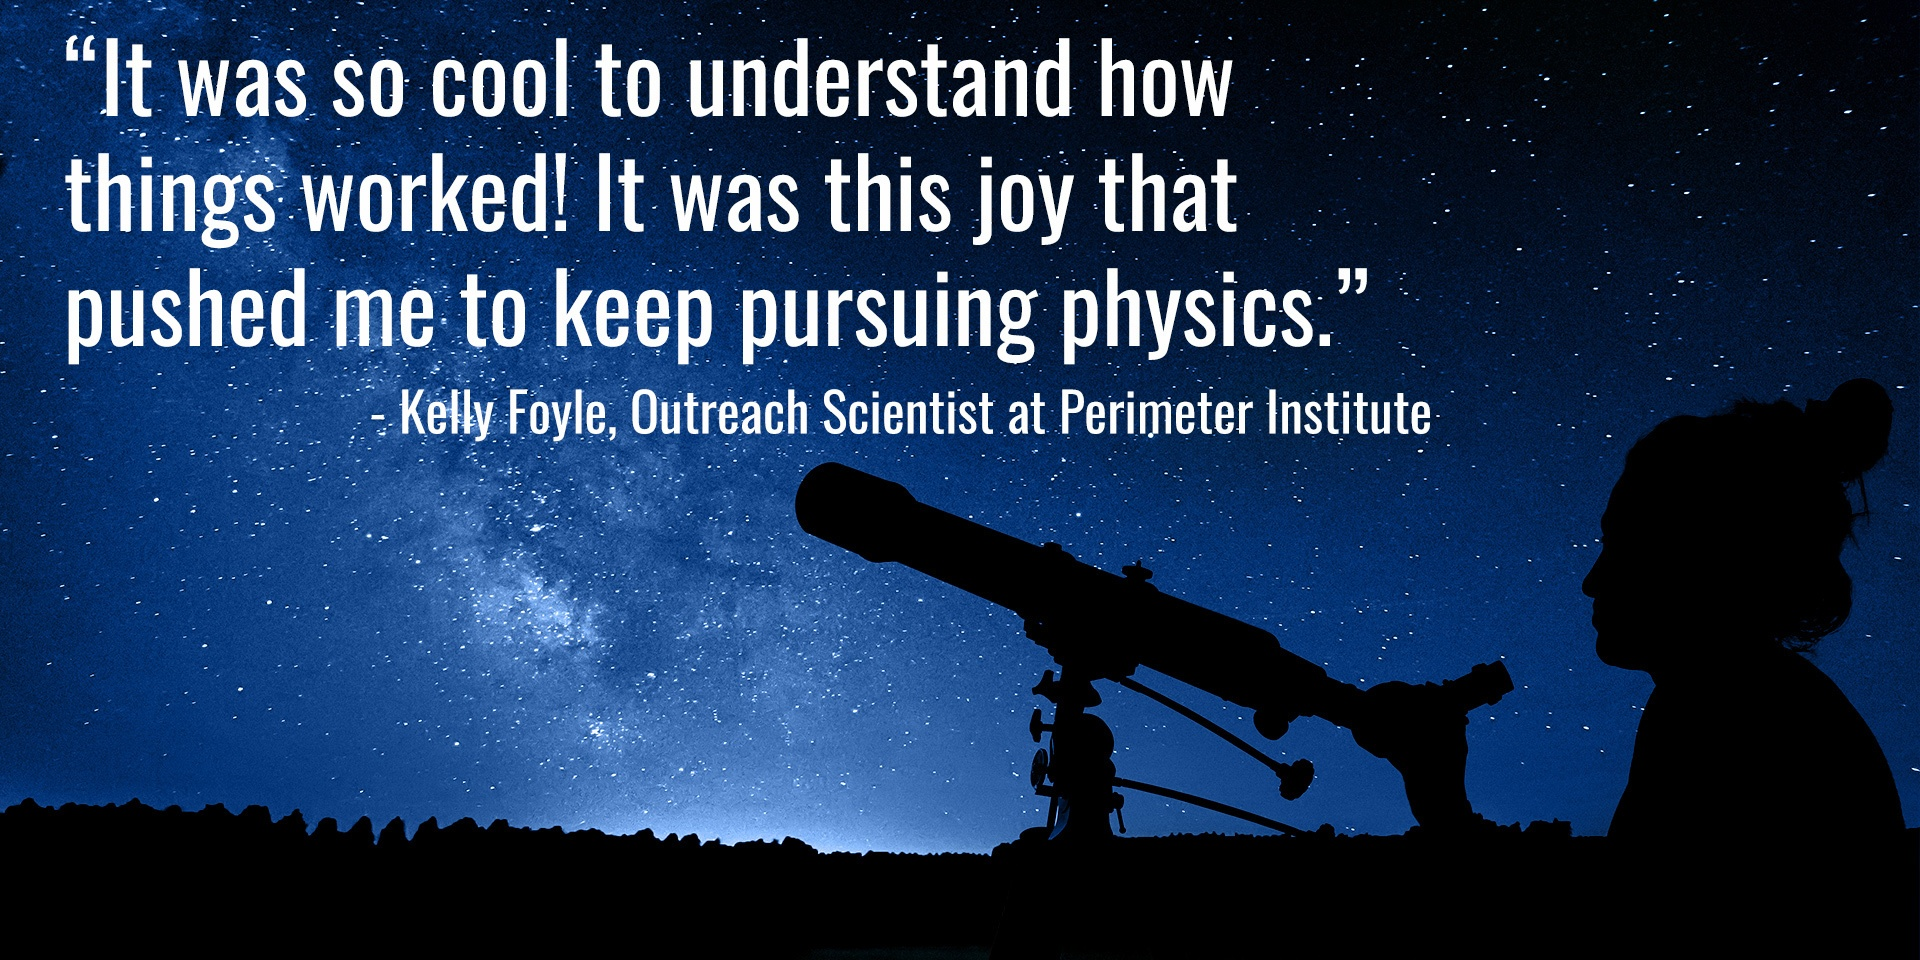 """""""It was so cool to understand how things worked! It was this joy that pushed me to keep pursuing physics."""" - Kelly Foyle, Outreach Scientist at Perimeter Institute"""